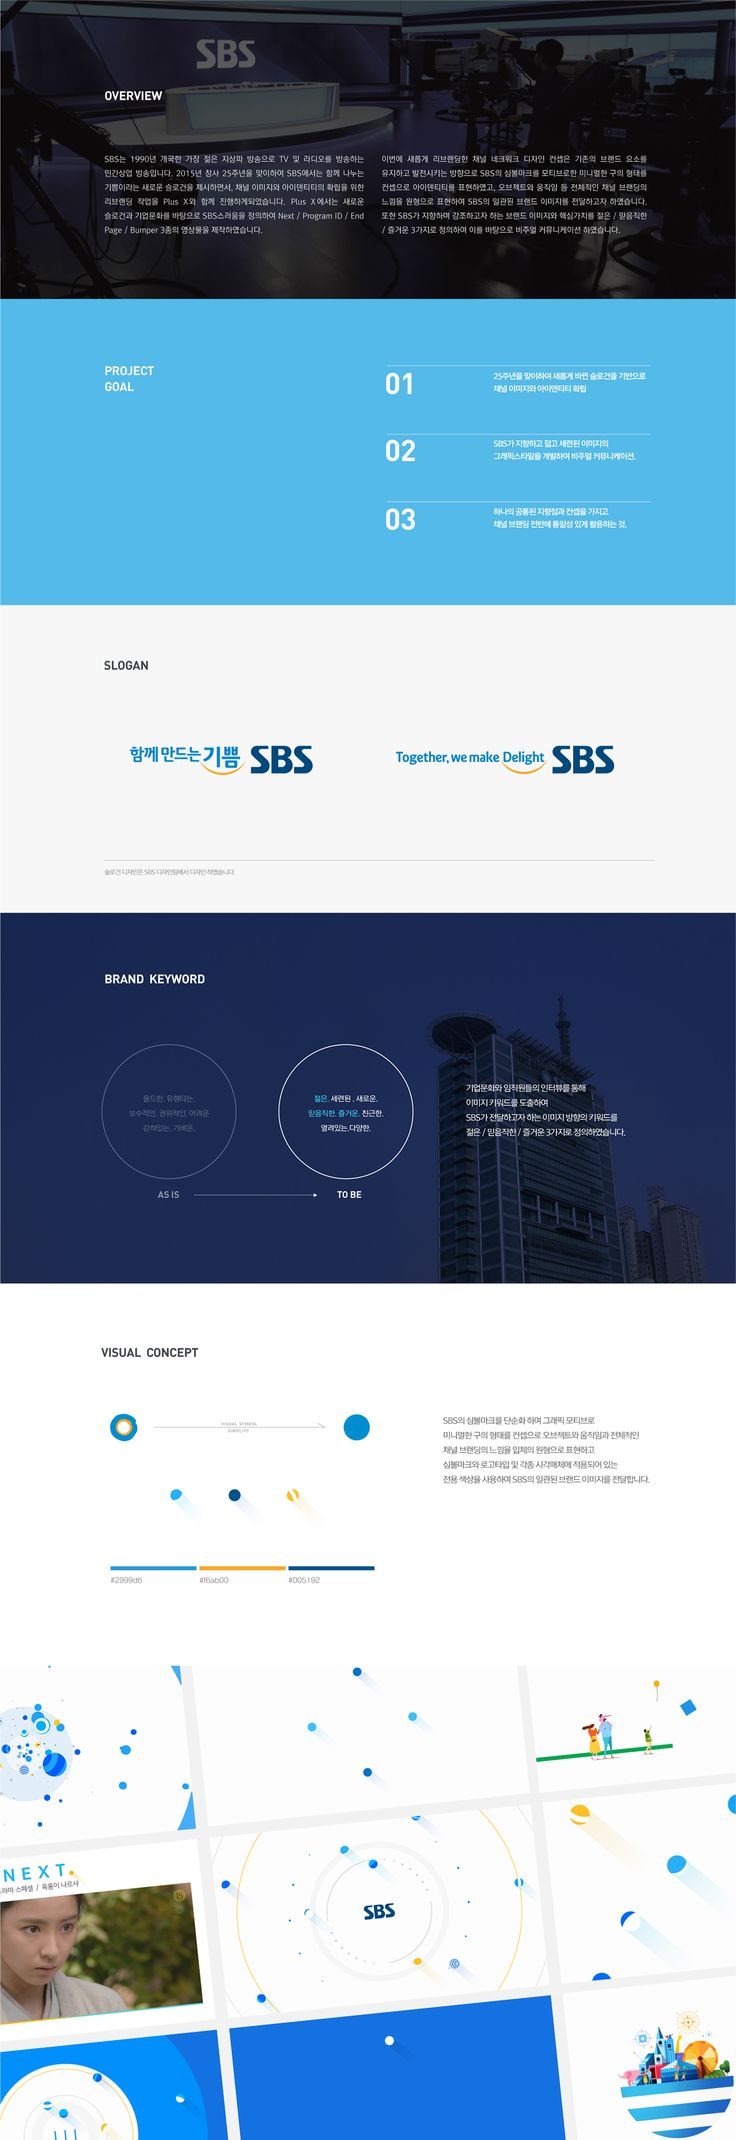 SBS Channel Design Rebranding on Behance